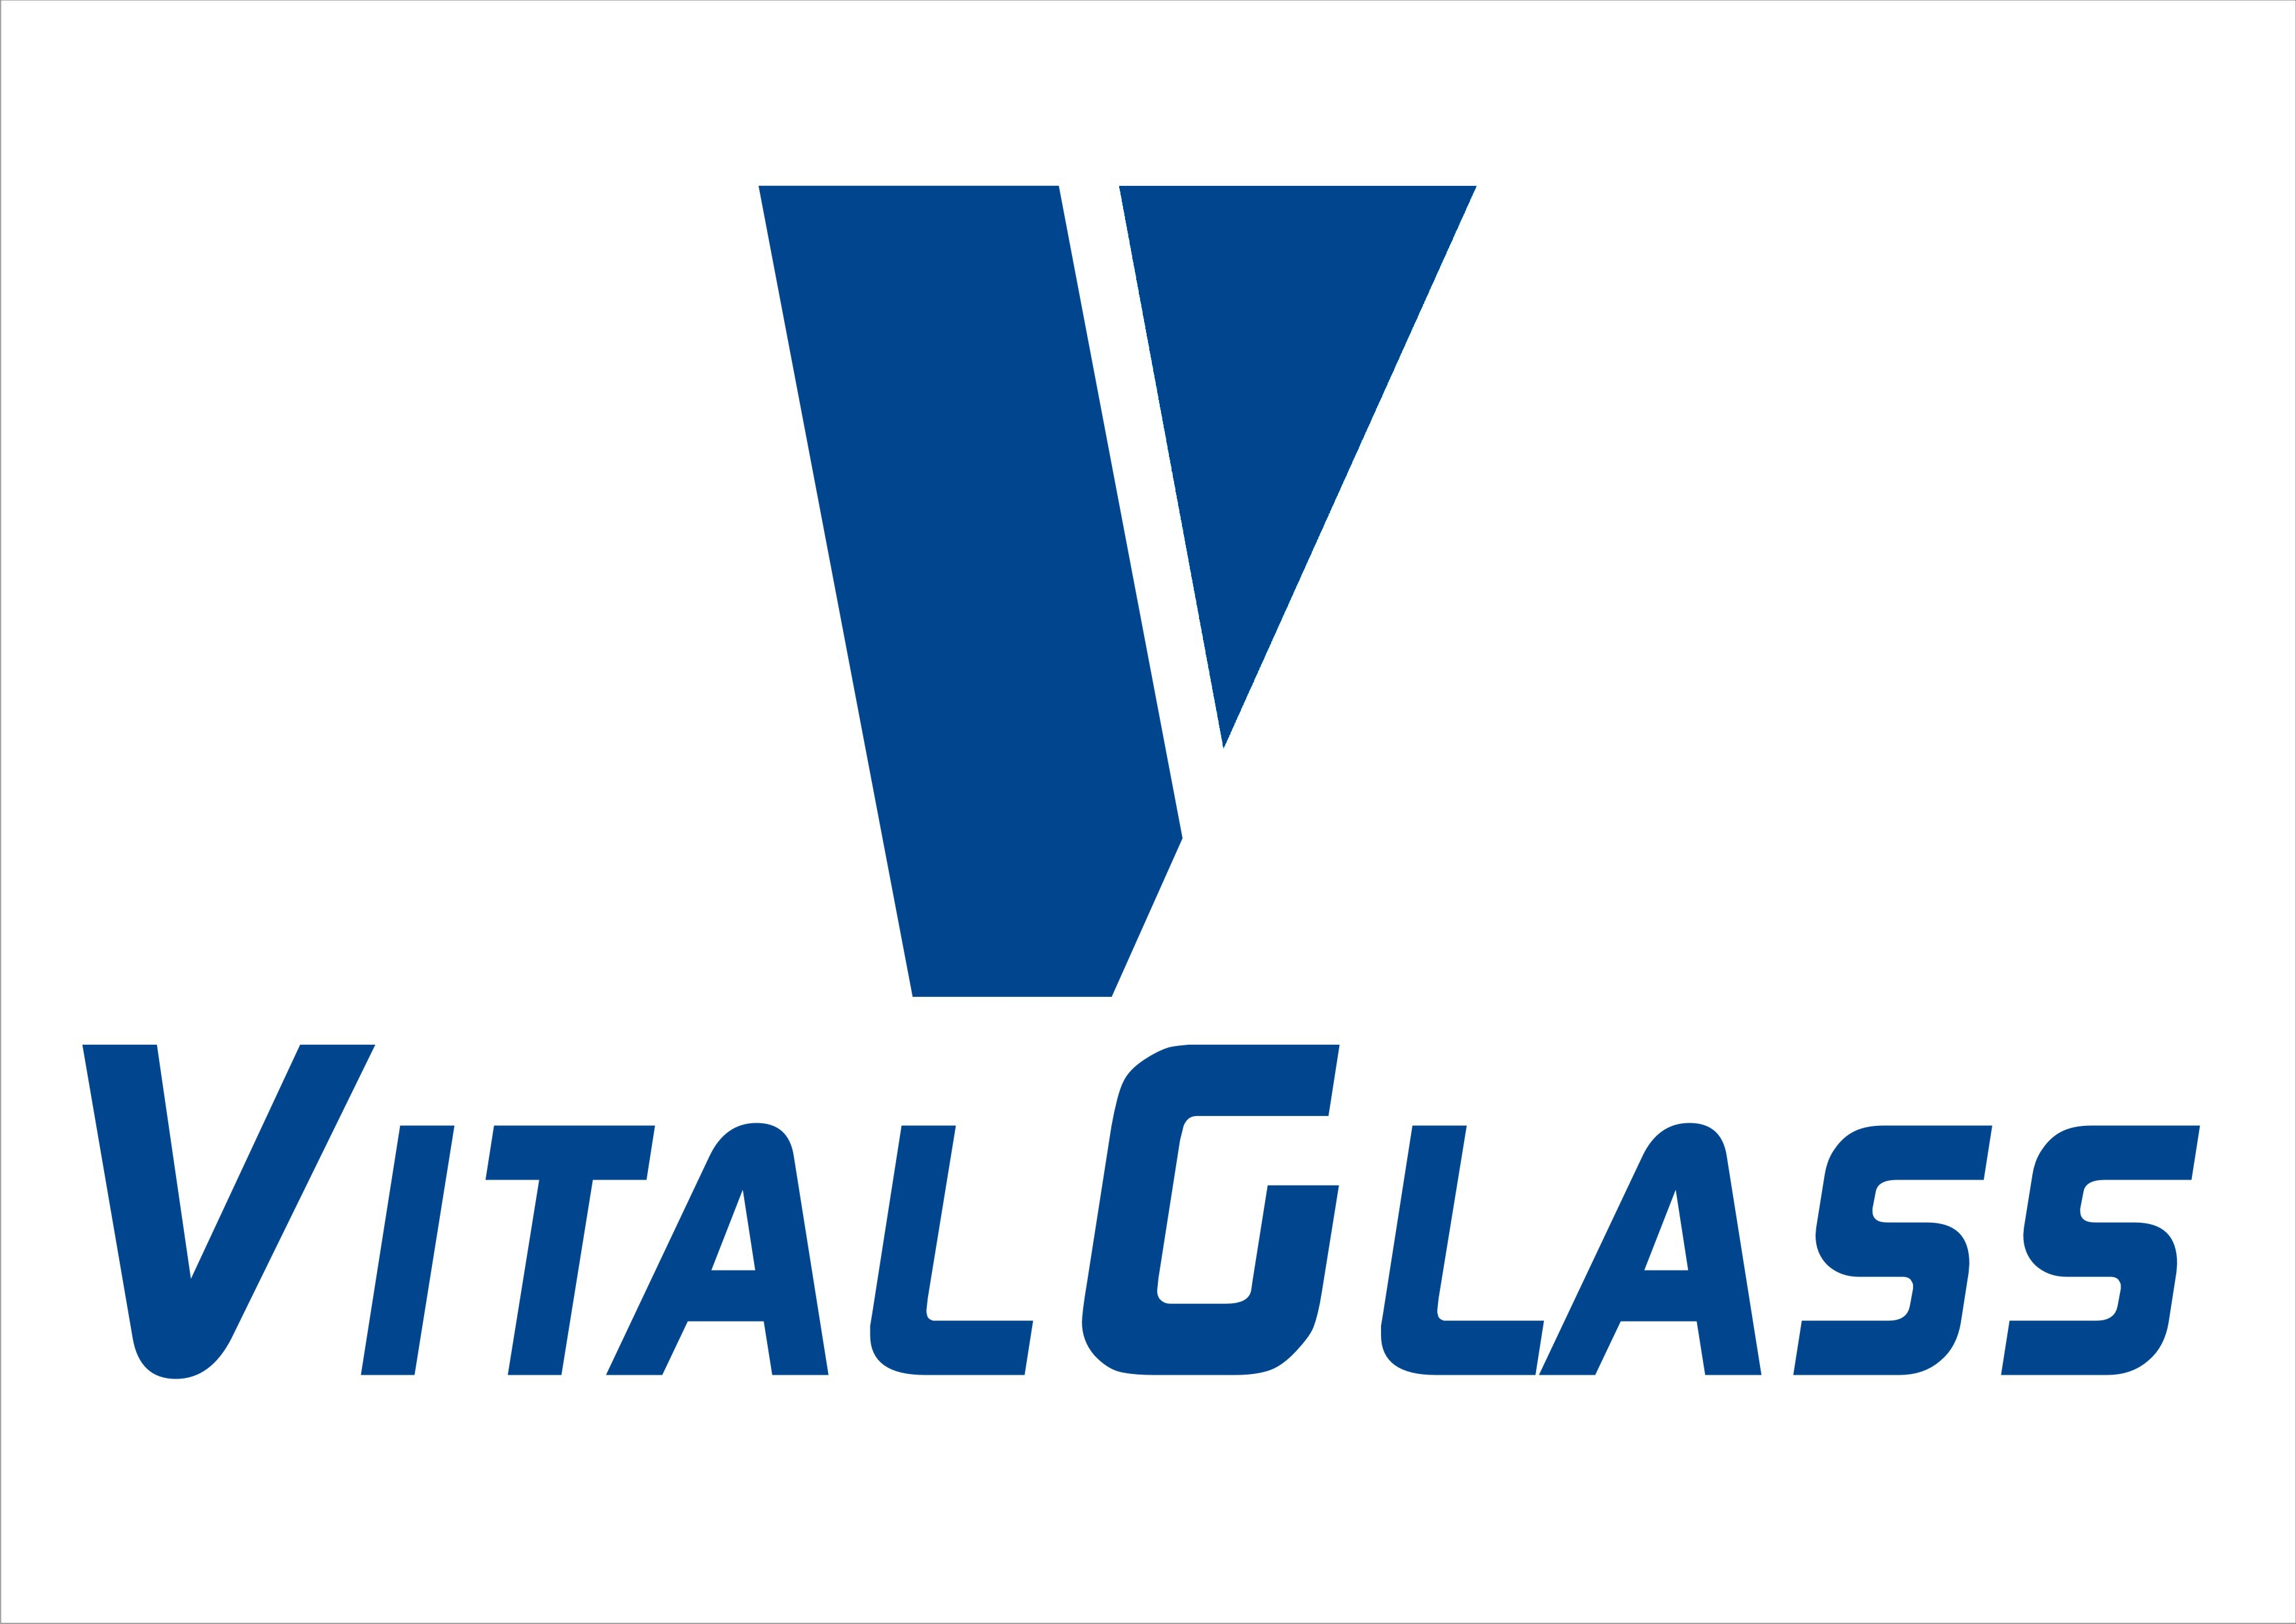 VITAL GLASS-VITAL INDUSTRIAL GROUP LIMITED